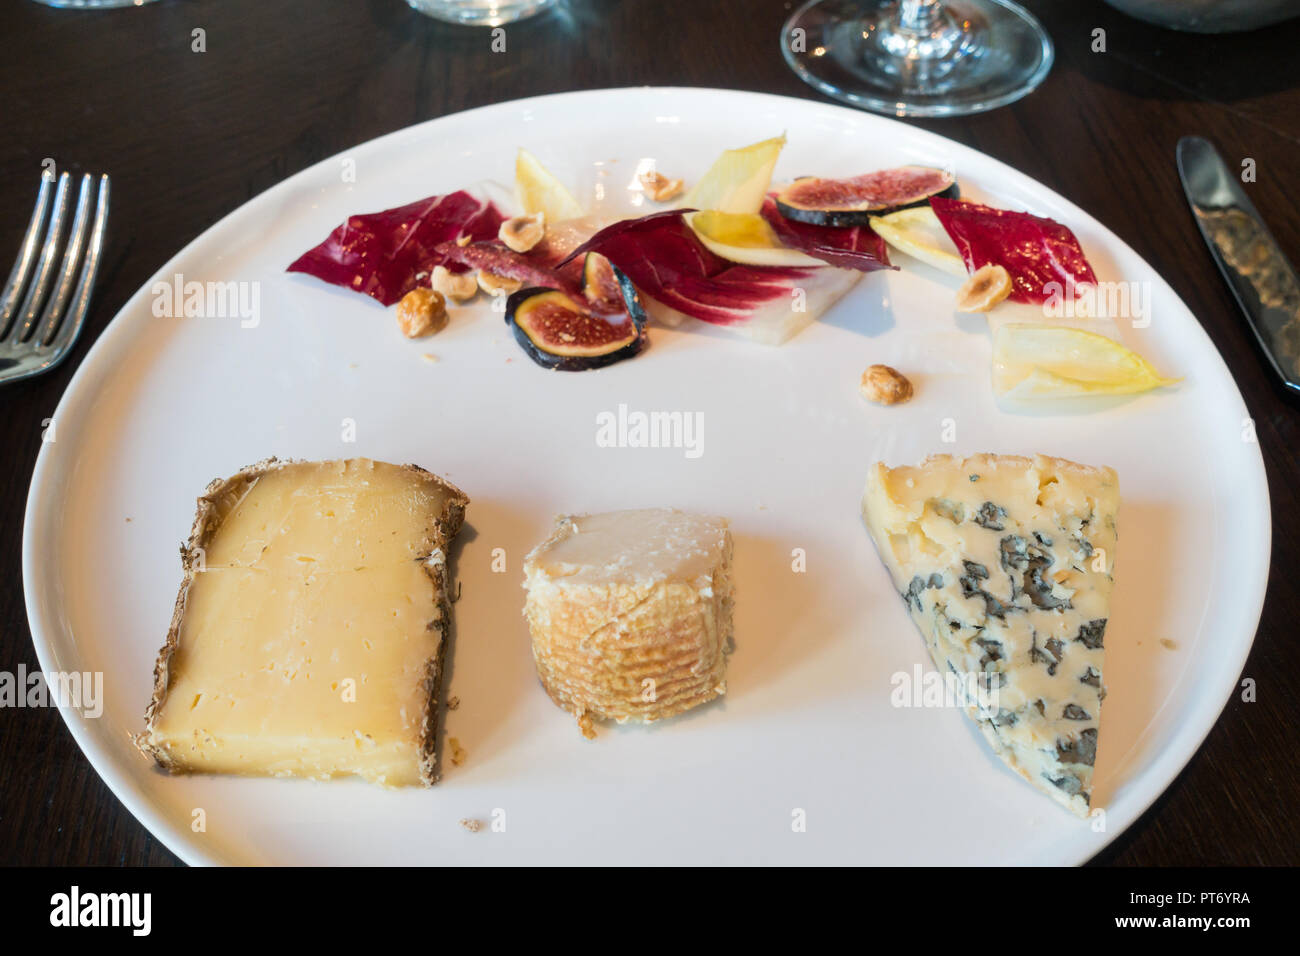 Lunch dishes at the Roux at the landau inThe Langham Hotel, UK.Cheese plate. Stock Photo